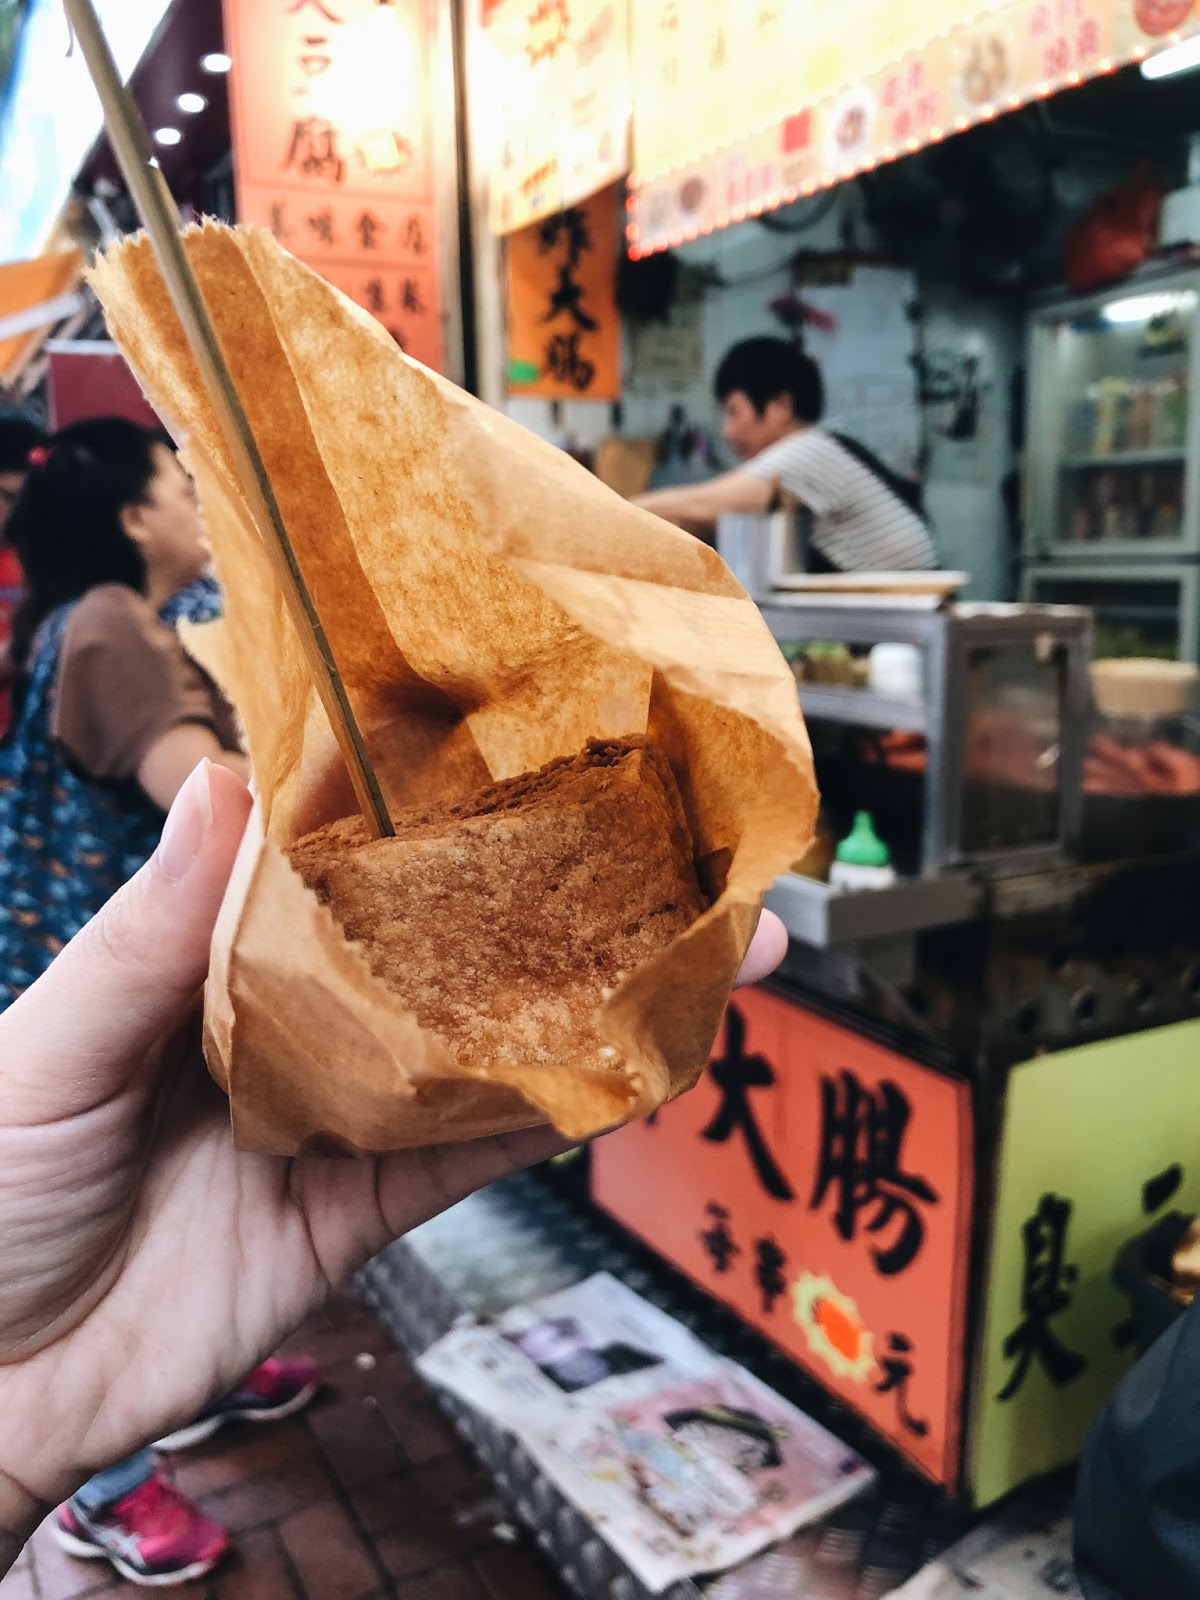 singapore blogger stylist street style fashion photography what to eat in hong kong what to do in hong kong dim sum where to go